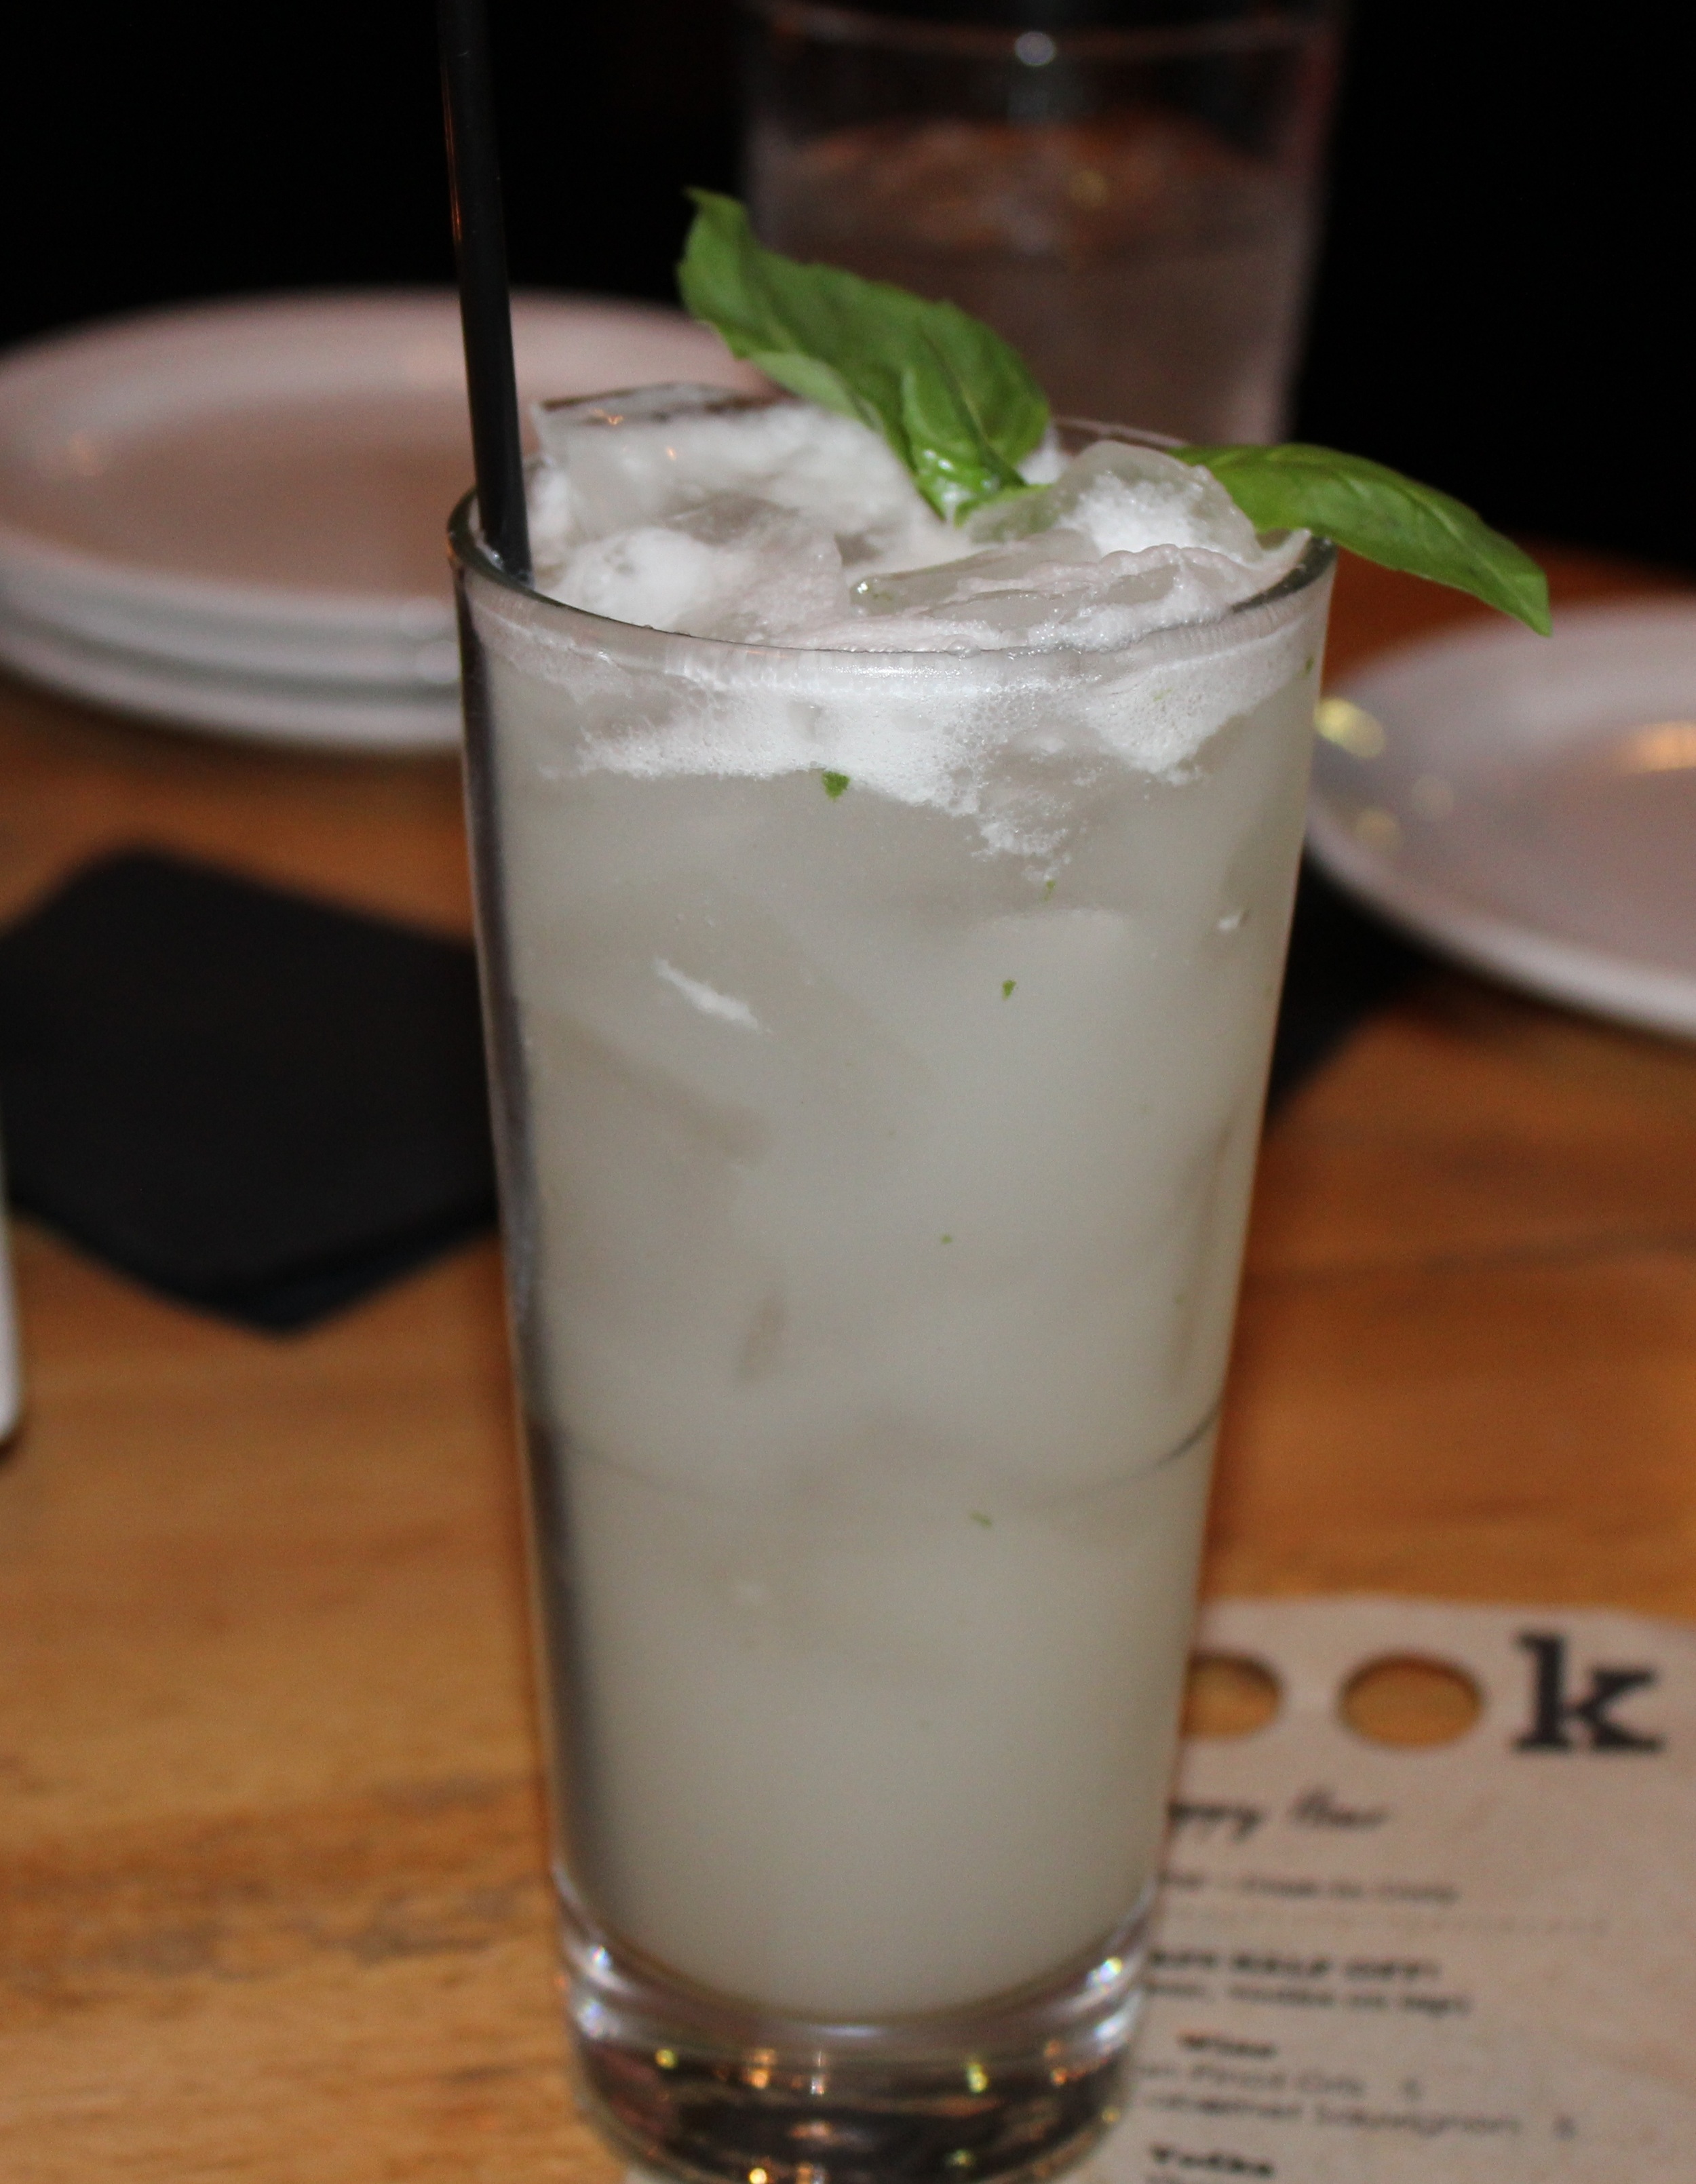 Thai Fighter (Charbay Tahitian Vanilla Rum, coconut simple syrup, Fever-Tree ginger beer, and lime)